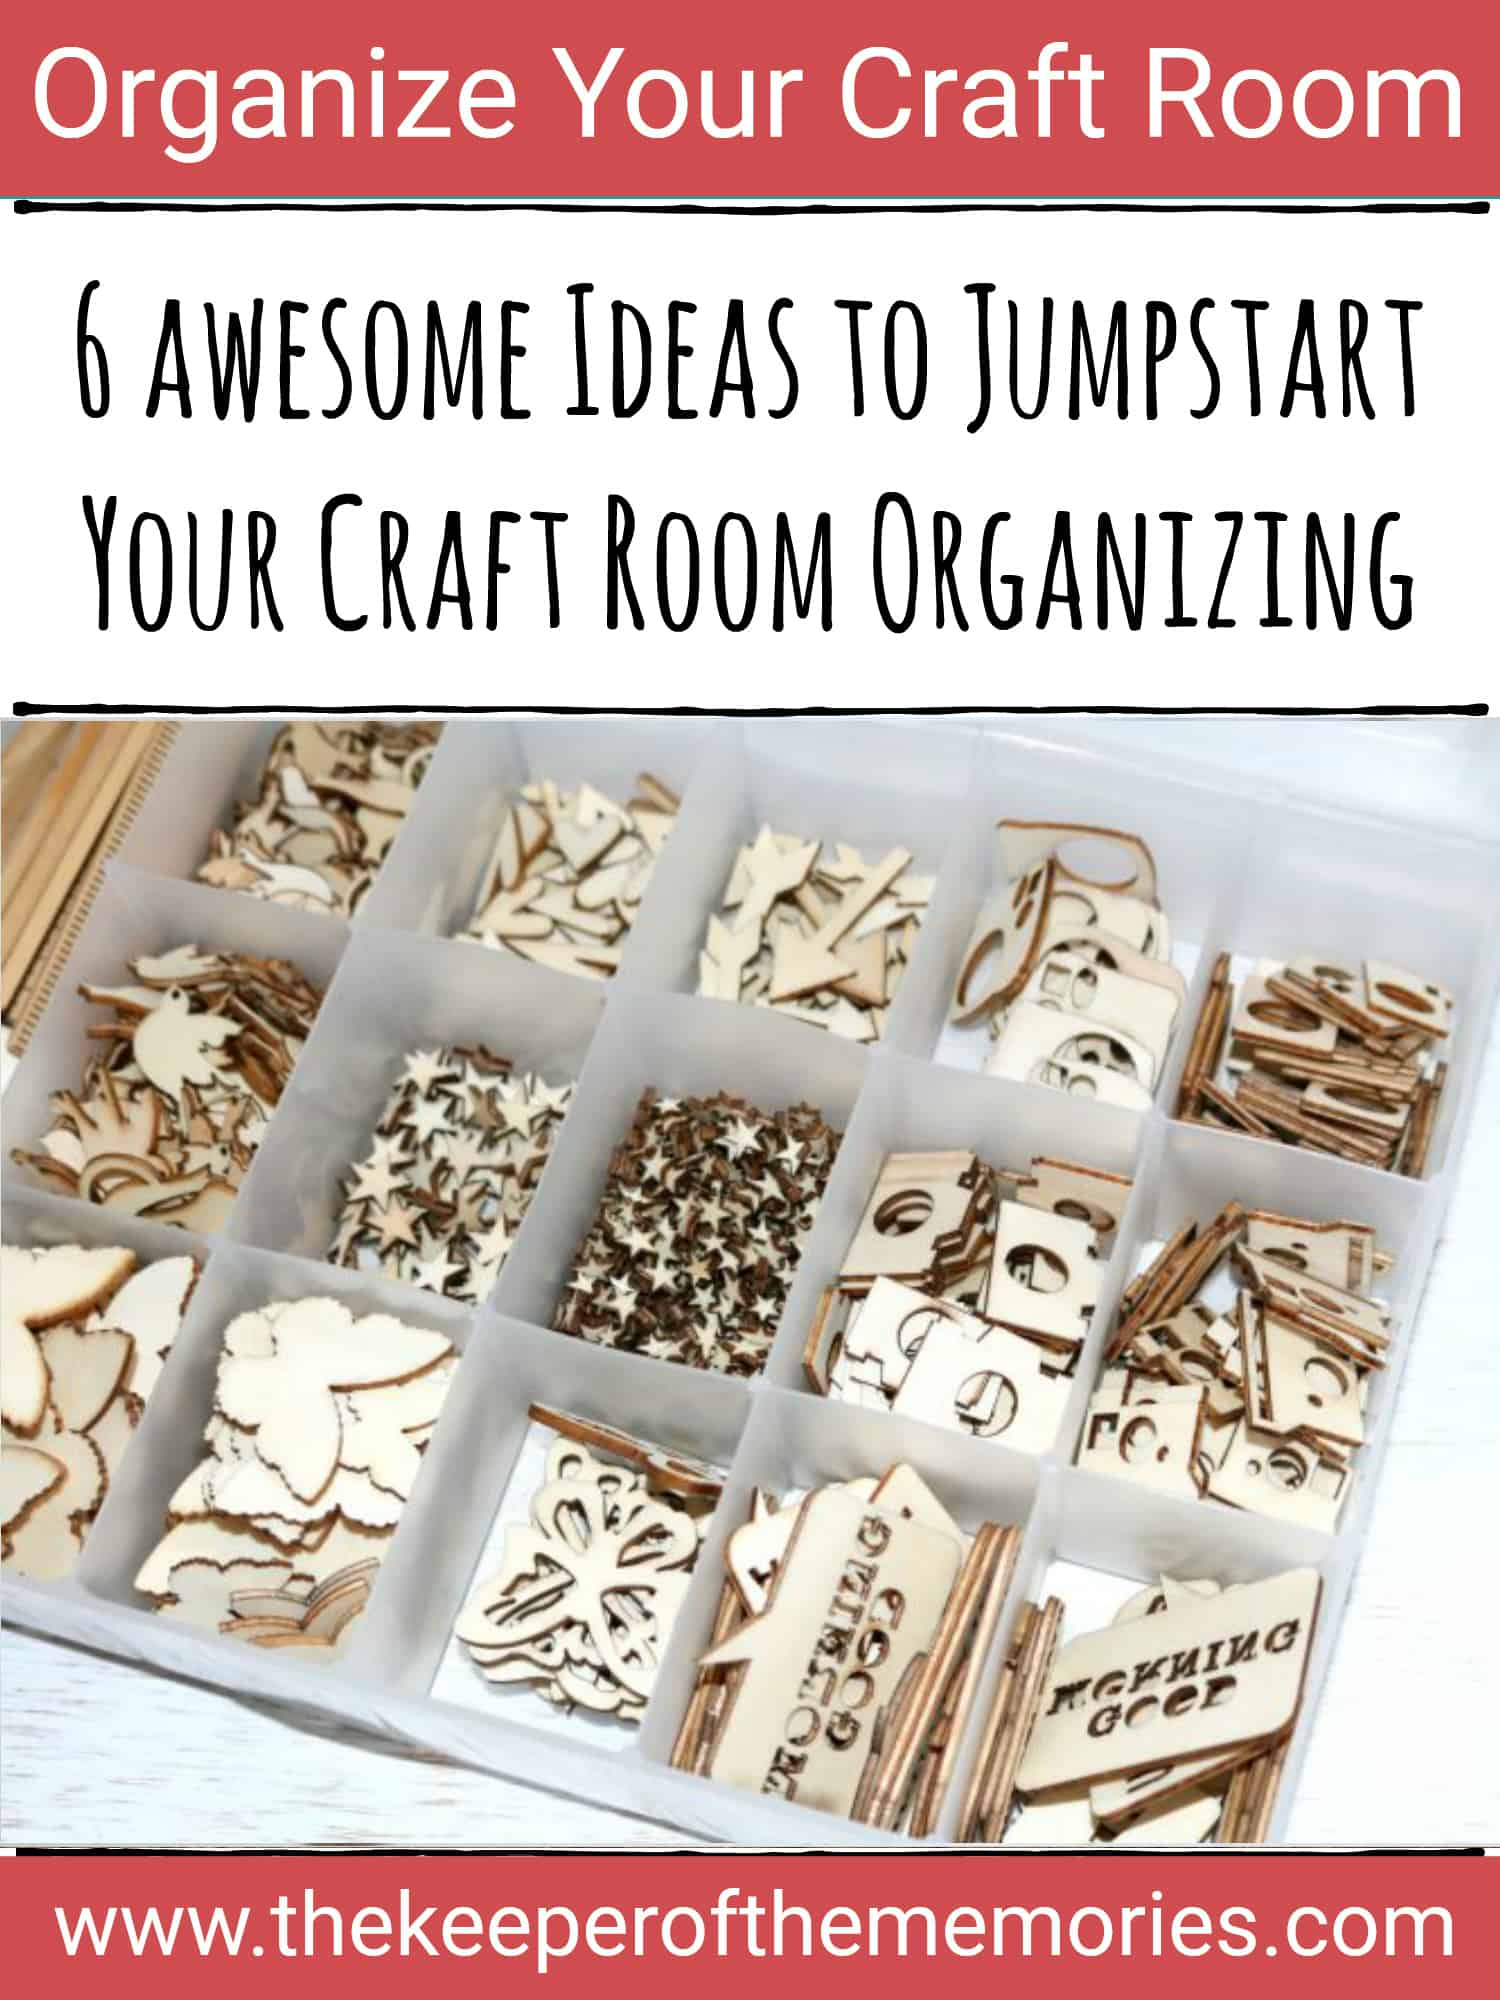 6 Awesome Ideas to Jumpstart Your Craft Organizing